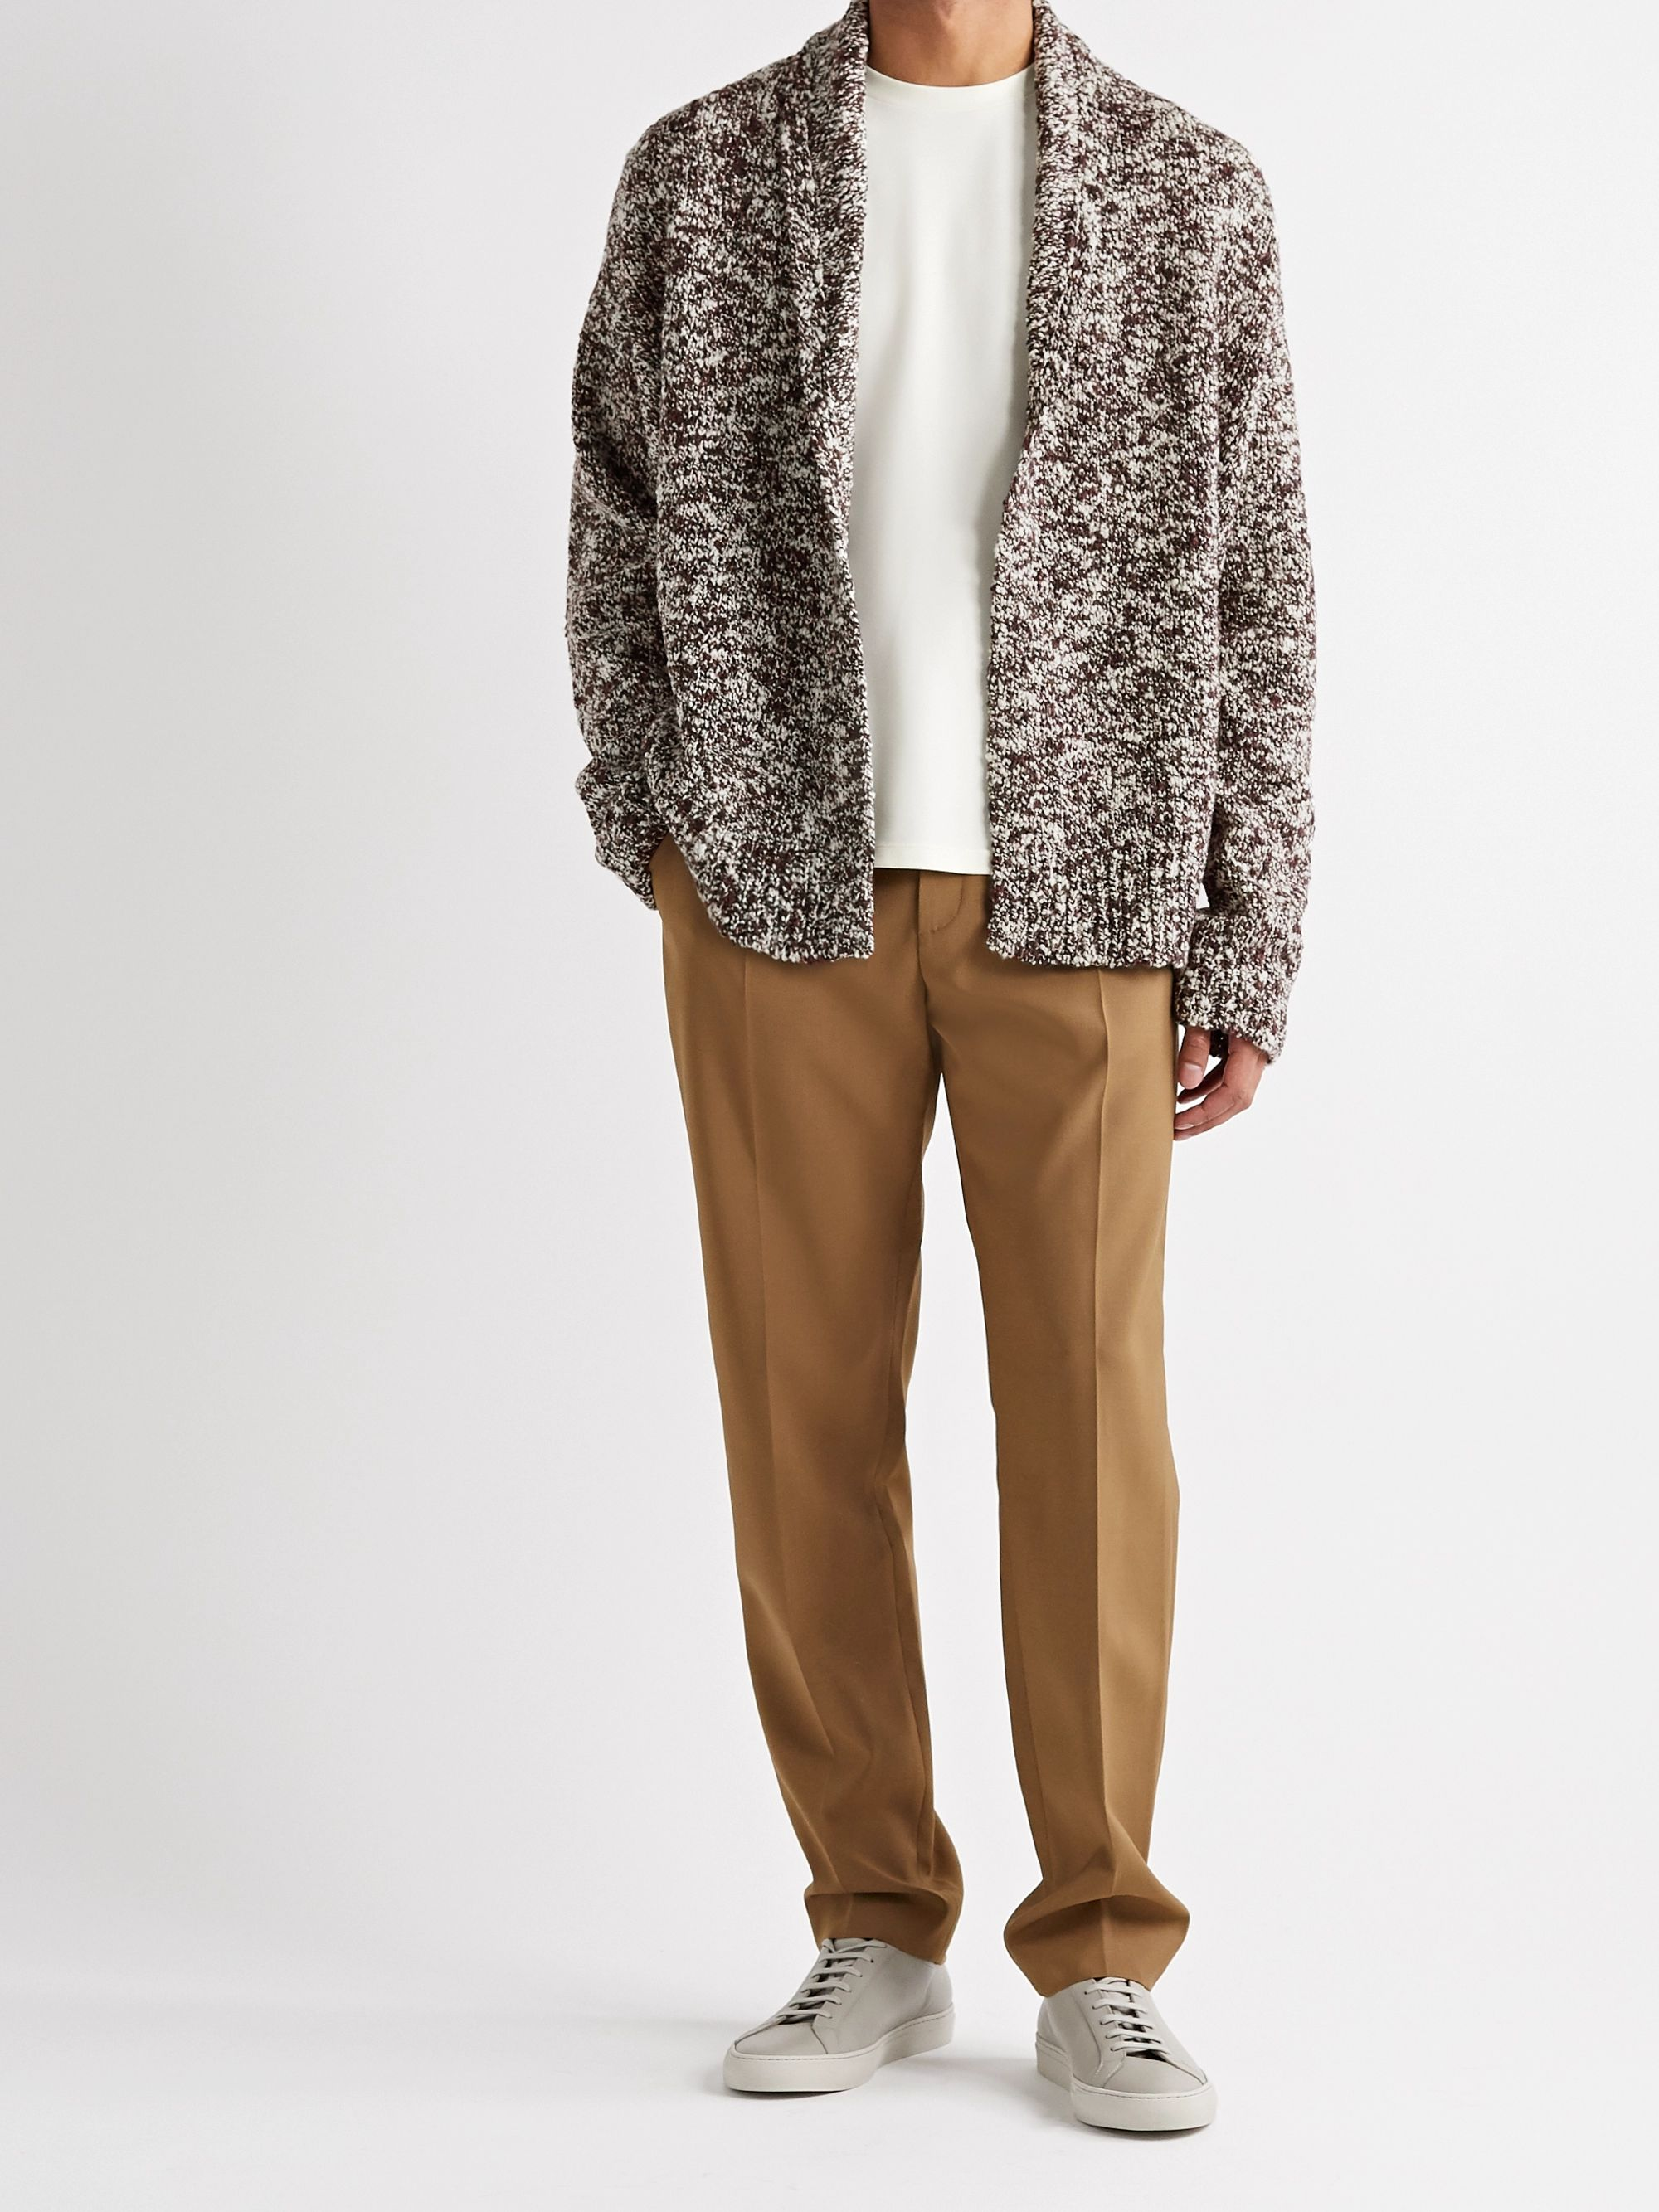 DEVEAUX Sean Shawl-Collar Wool-Blend Bouclé Cardigan